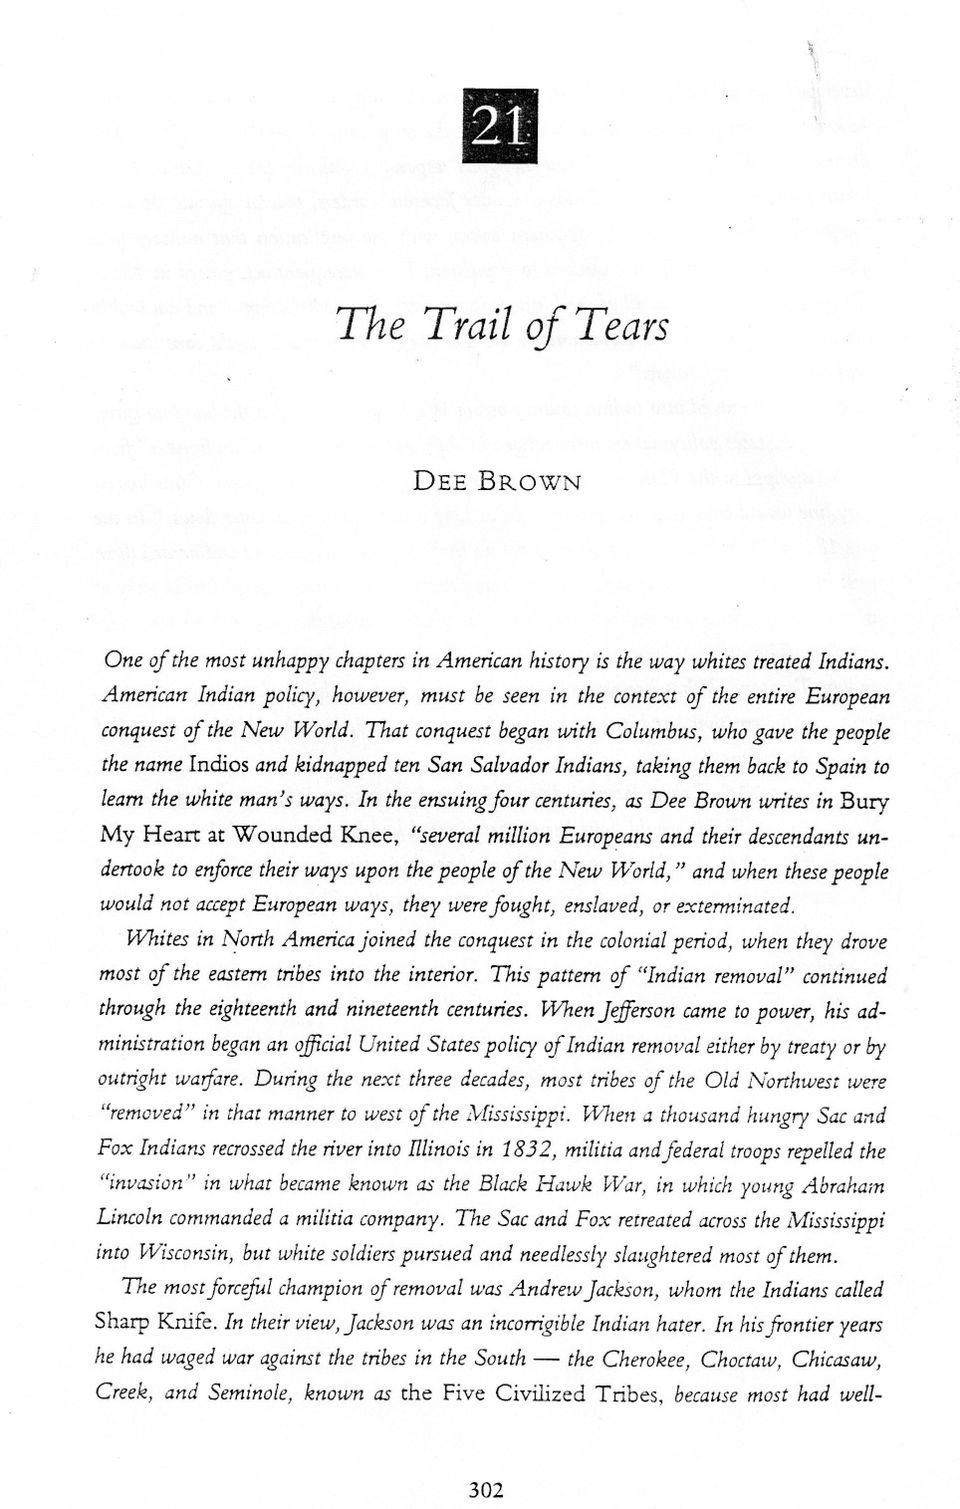 worksheet Trail Of Tears Worksheet the trail of tears dee brown my heart at wounded knee several that conquest began with columbus who gave people name indios and kidnapped ten